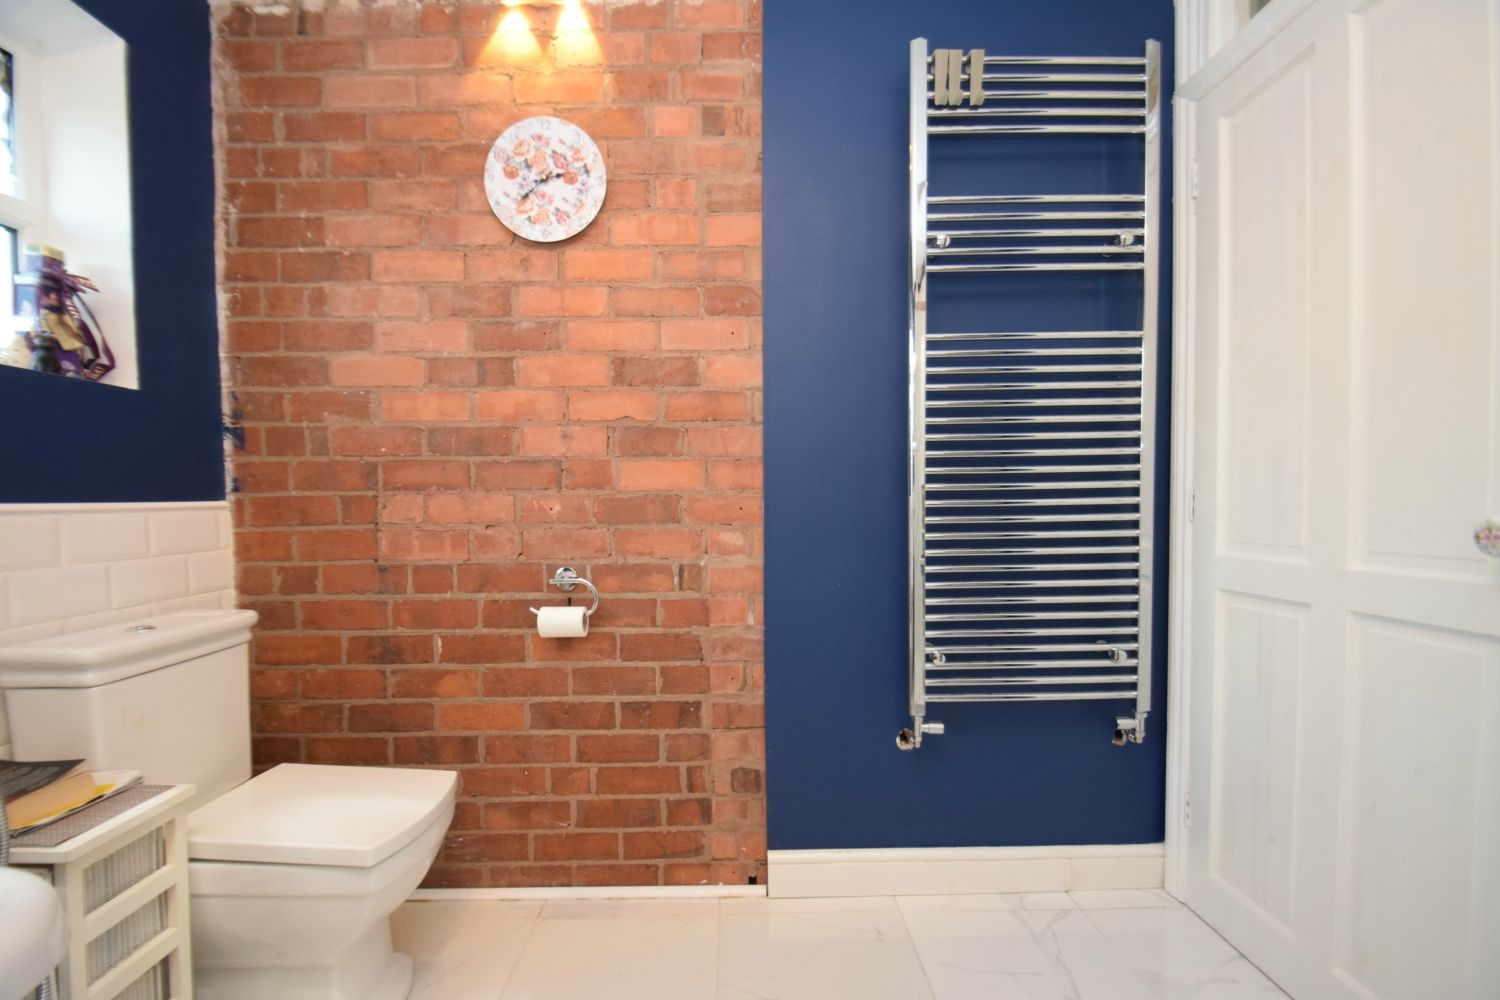 4 bed semi-detached for sale in Upland Grove, Bromsgrove, B61  - Property Image 21